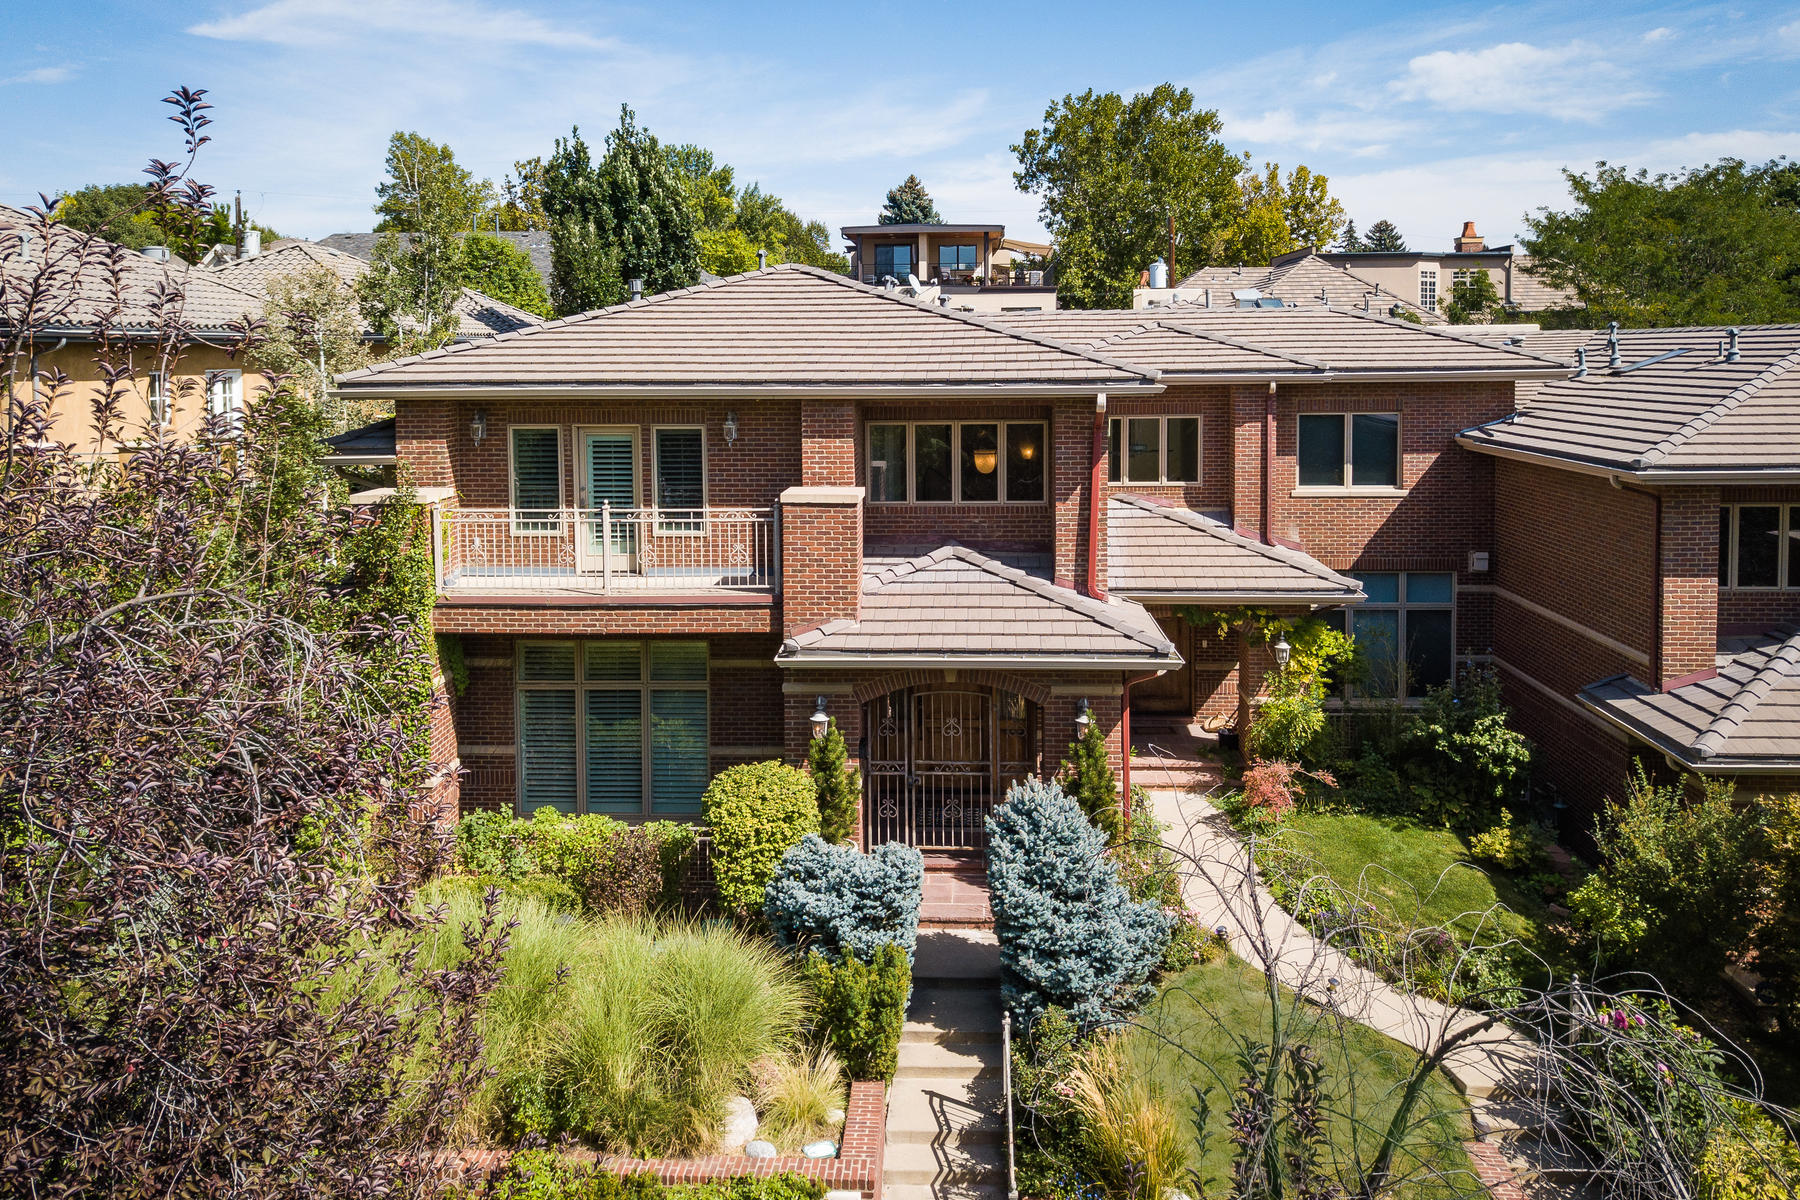 Additional photo for property listing at Desirable Cherry Creek North, walking distance to restaurants and shopping. 418 Steele St Denver, Colorado 80206 United States